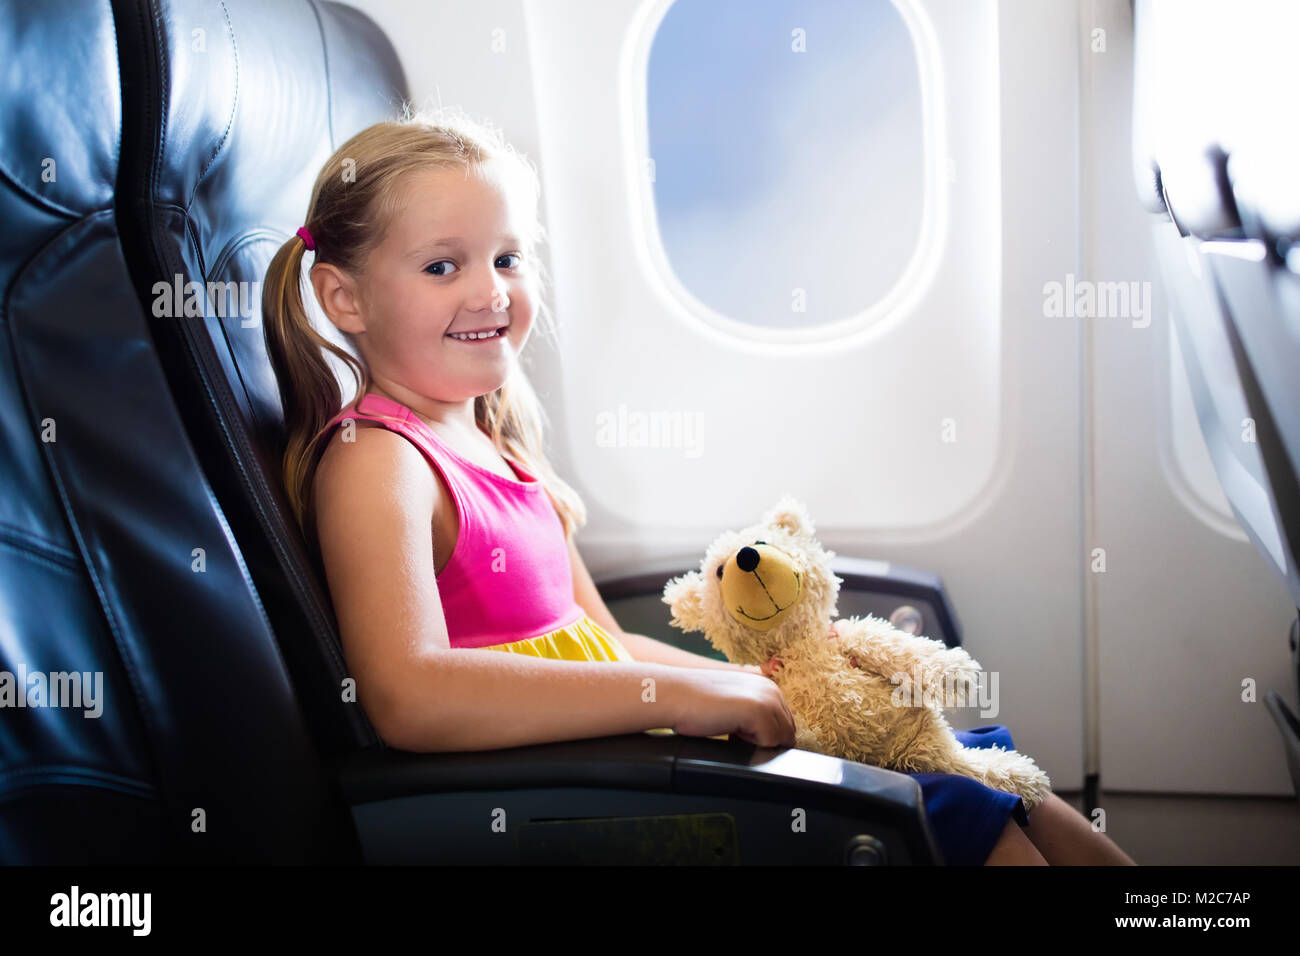 Child In Airplane Kid Air Plane Sitting Window Seat Flight Entertainment For Kids Traveling With Young Children Fly And Travel Family